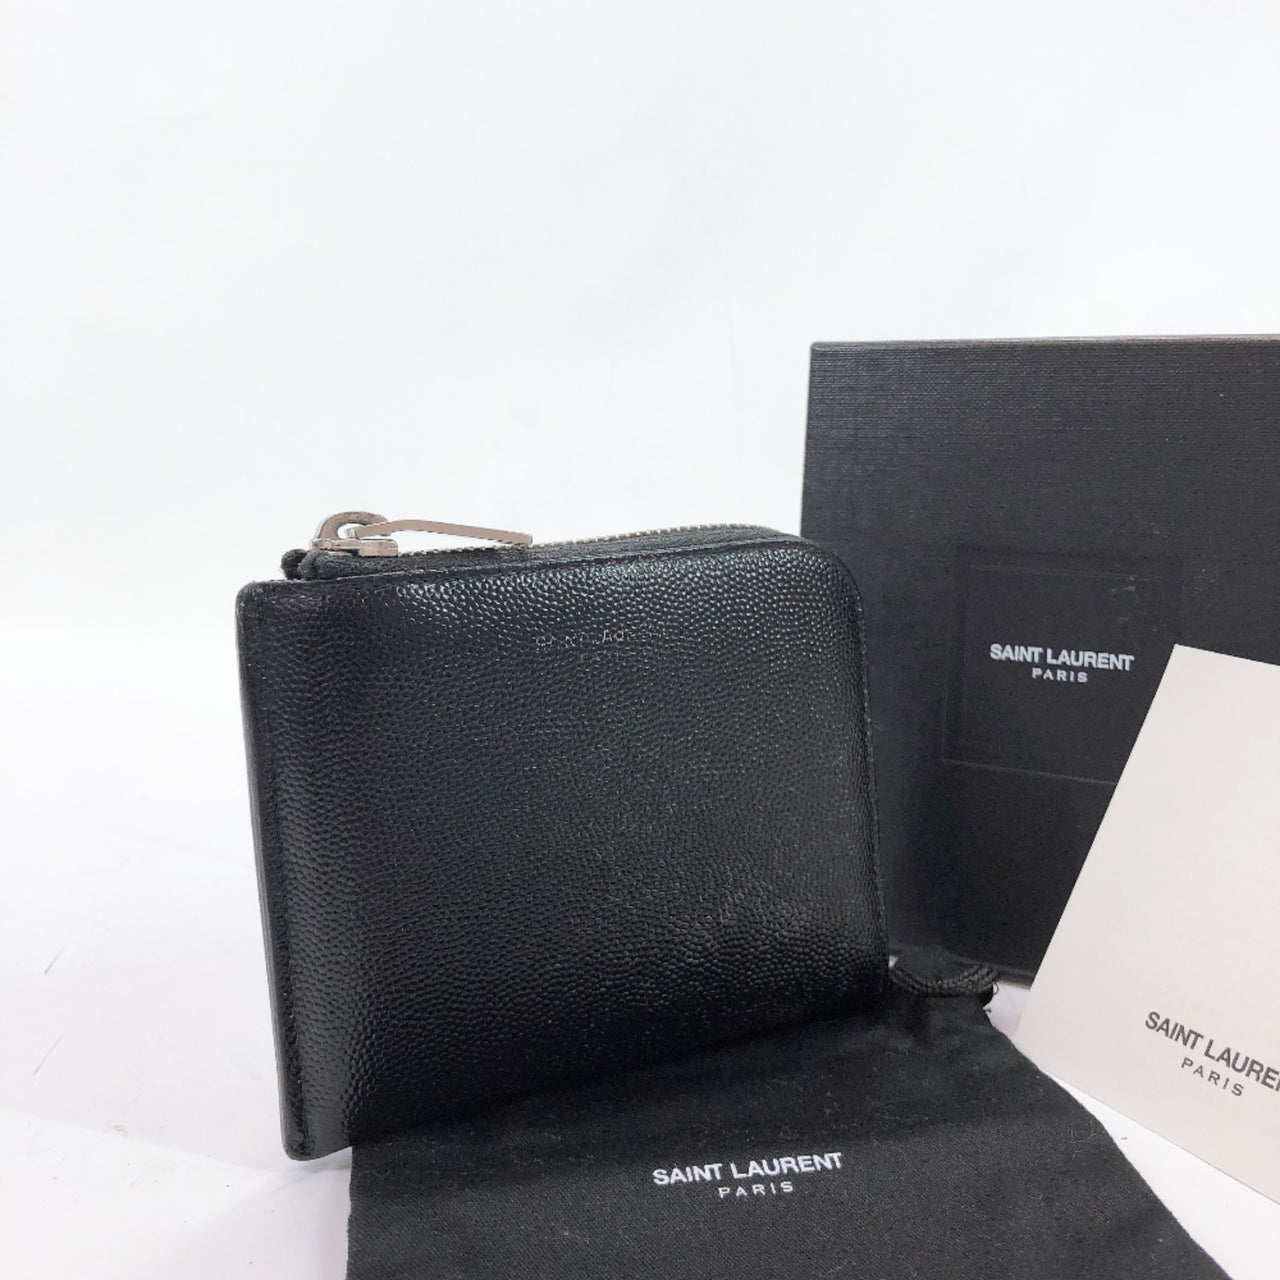 SAINT LAURENT PARIS coin purse L-shaped fastener leather black SilverHardware mens Used